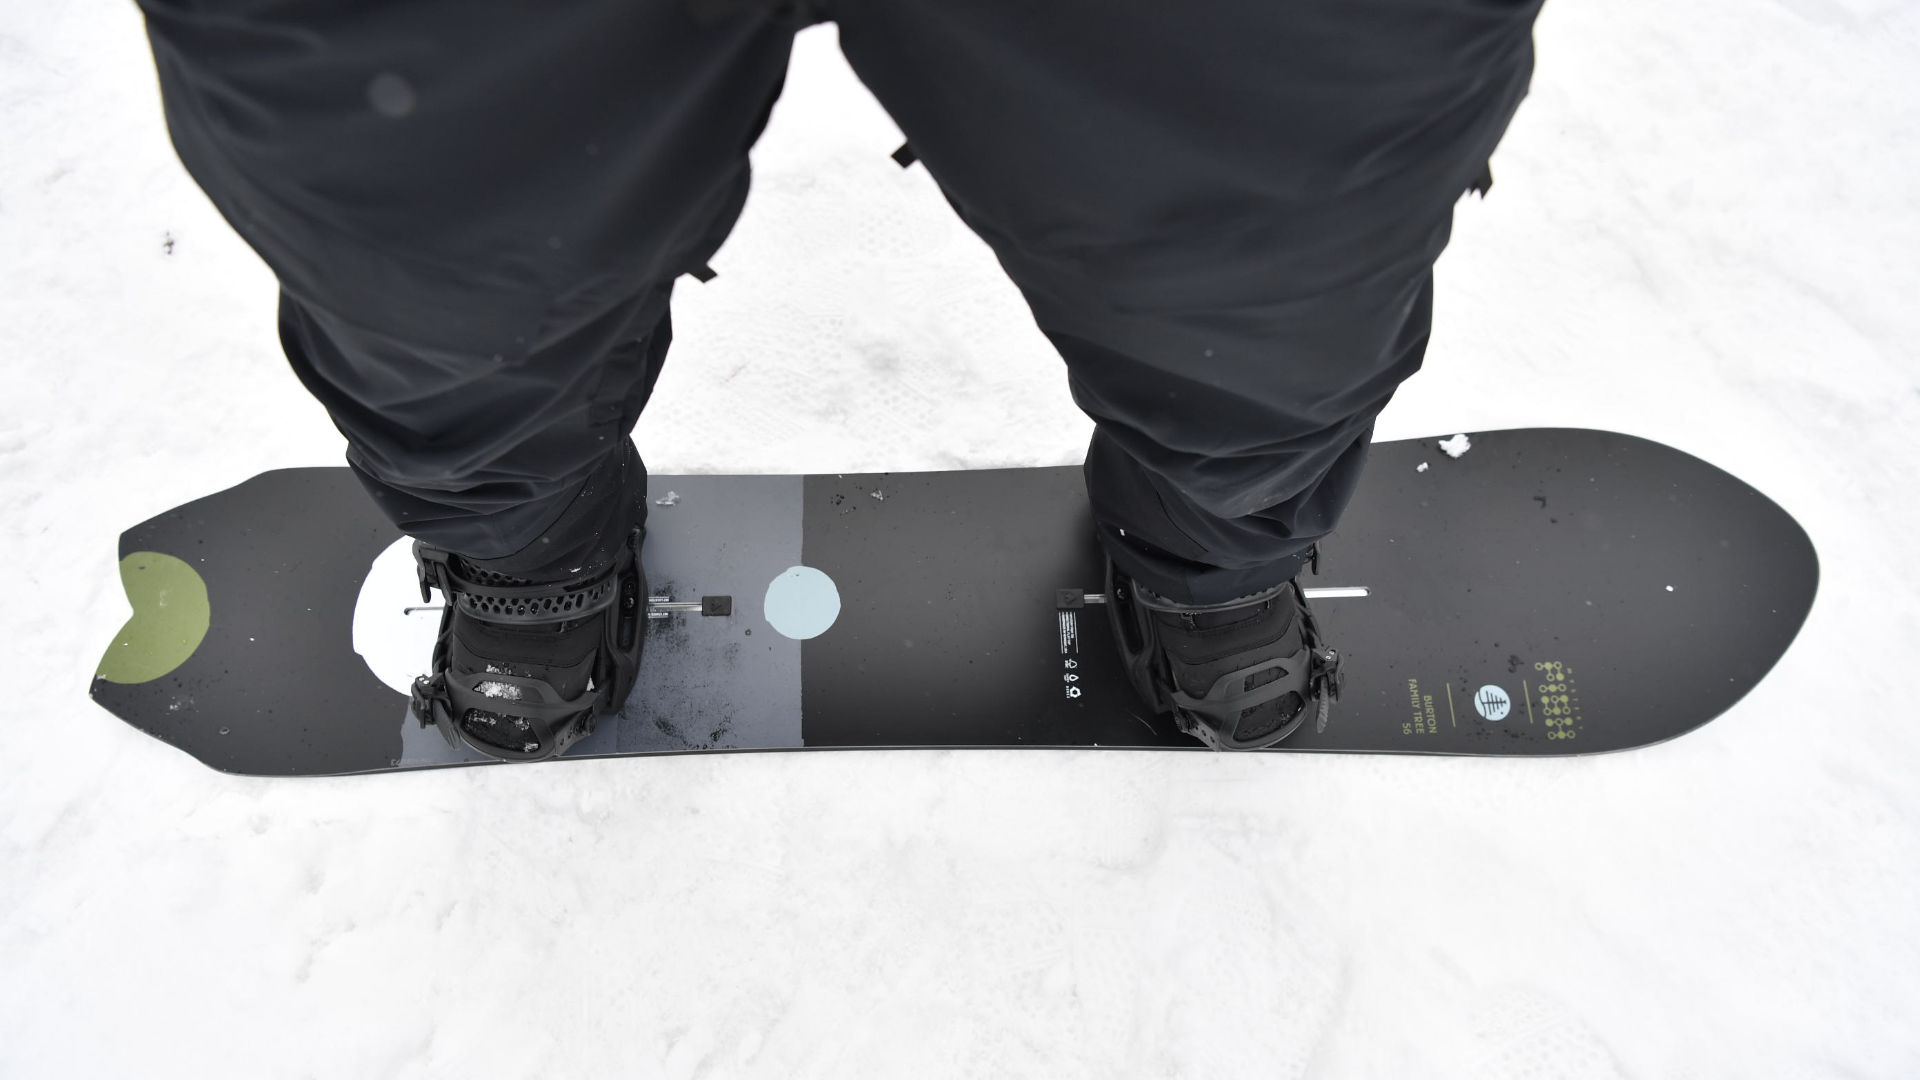 Burton Mystery Fish with Malavita Bindings mounted into the channel system